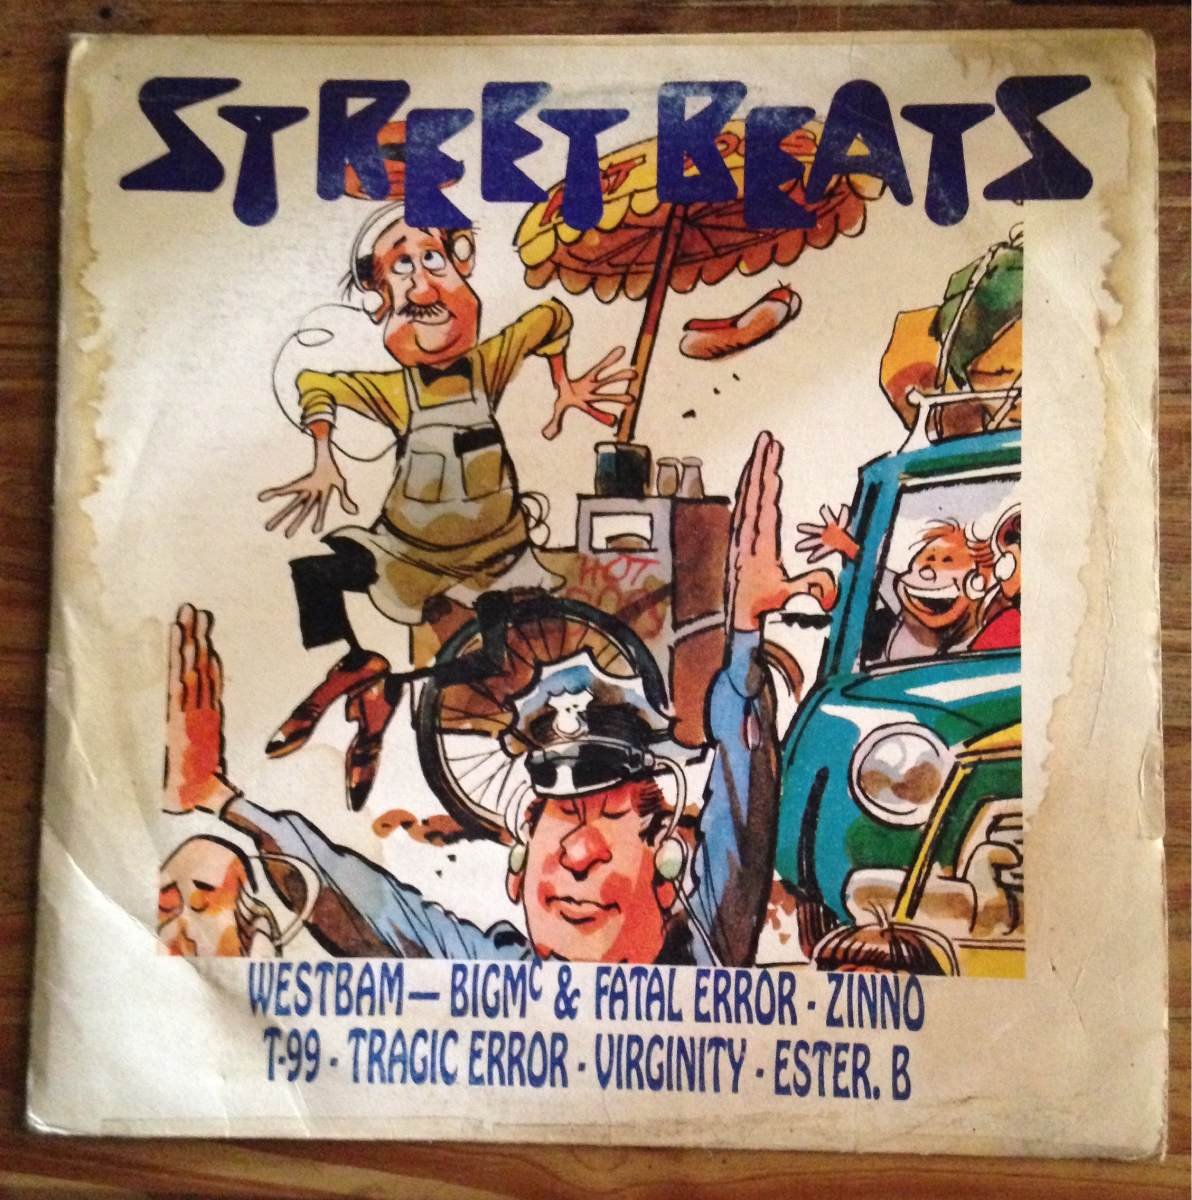 Street Beats - Vinilo Lp House 90s - The Roof Is On Fire - $ 900,00